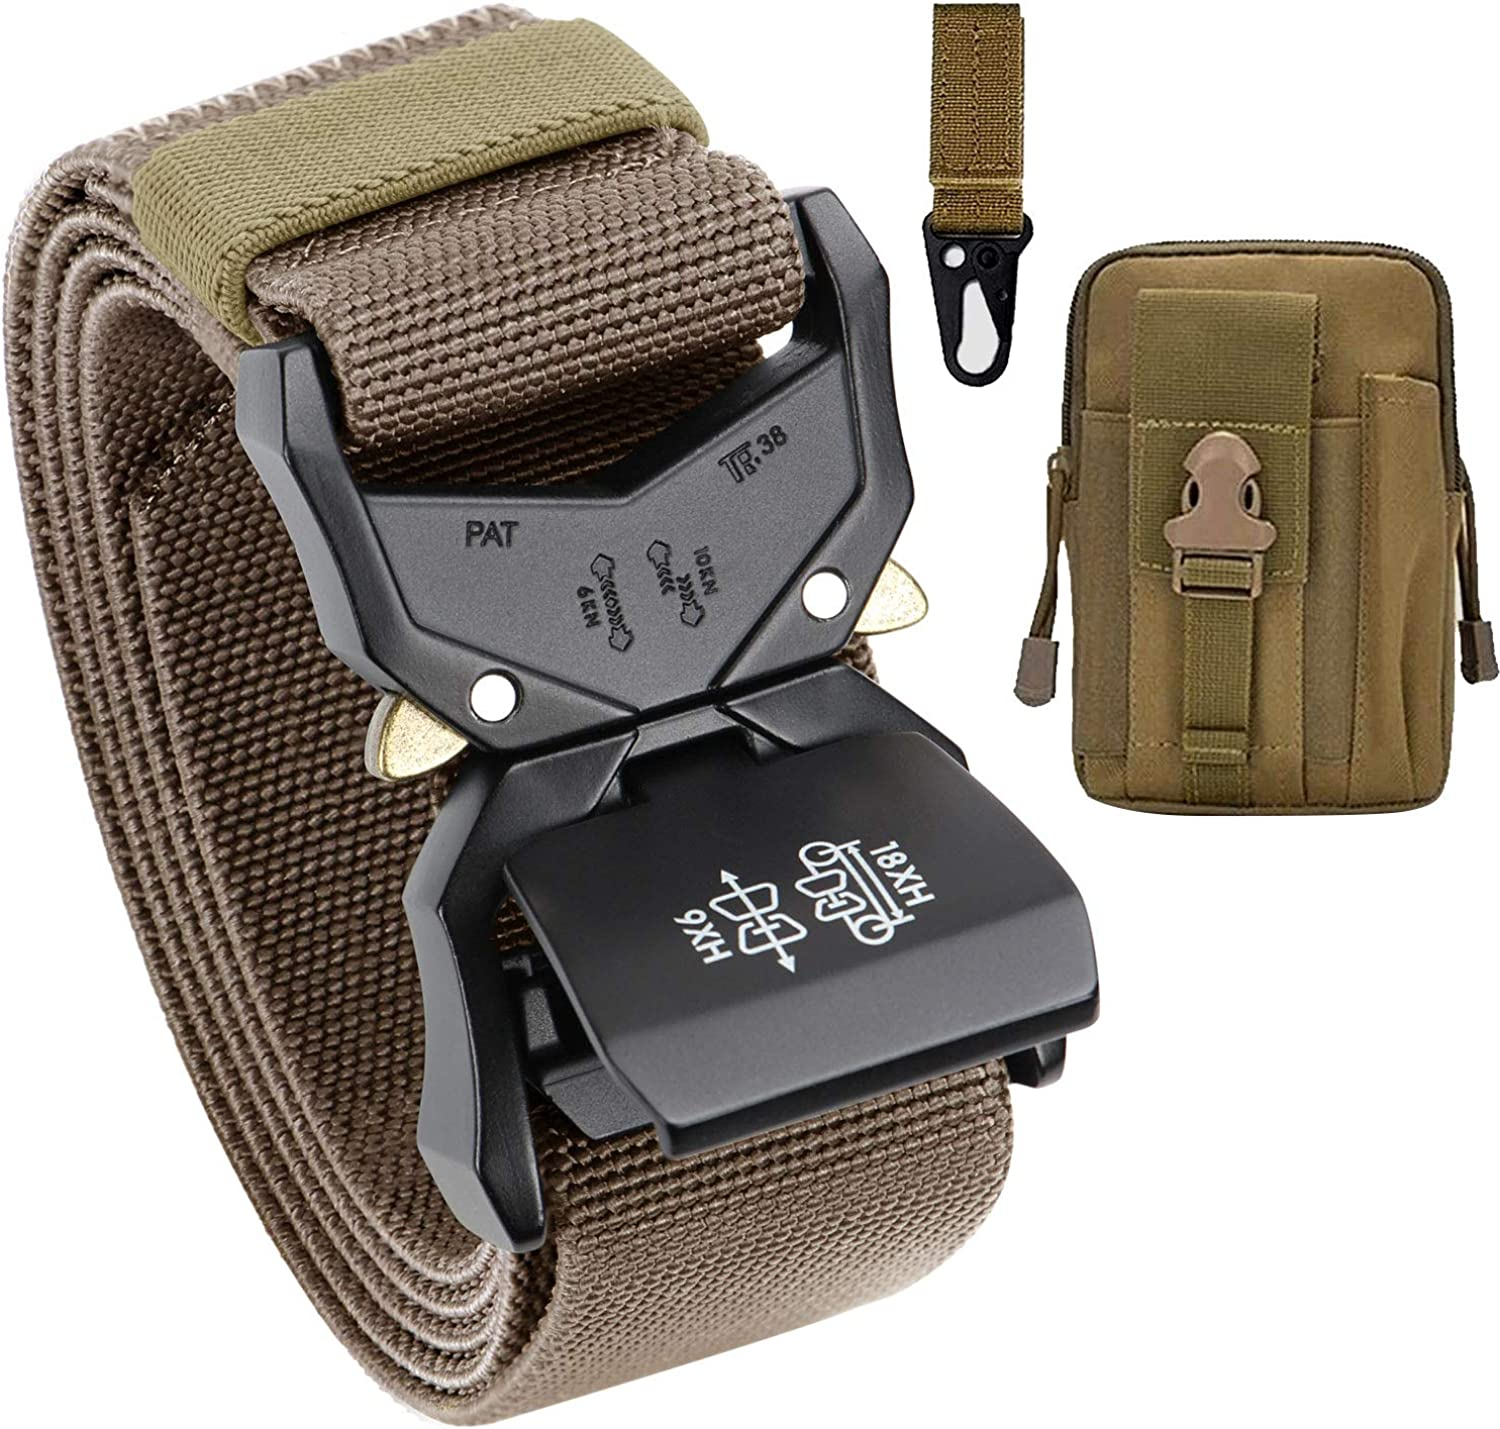 Gift with Tactical Molle Pouch and Hook BESTKEE Men Tactical Belt 1.5 Inch Heavy Duty Belt Cobra Buckle Belt Nylon Military Style with Quick-Release Metal Buckle